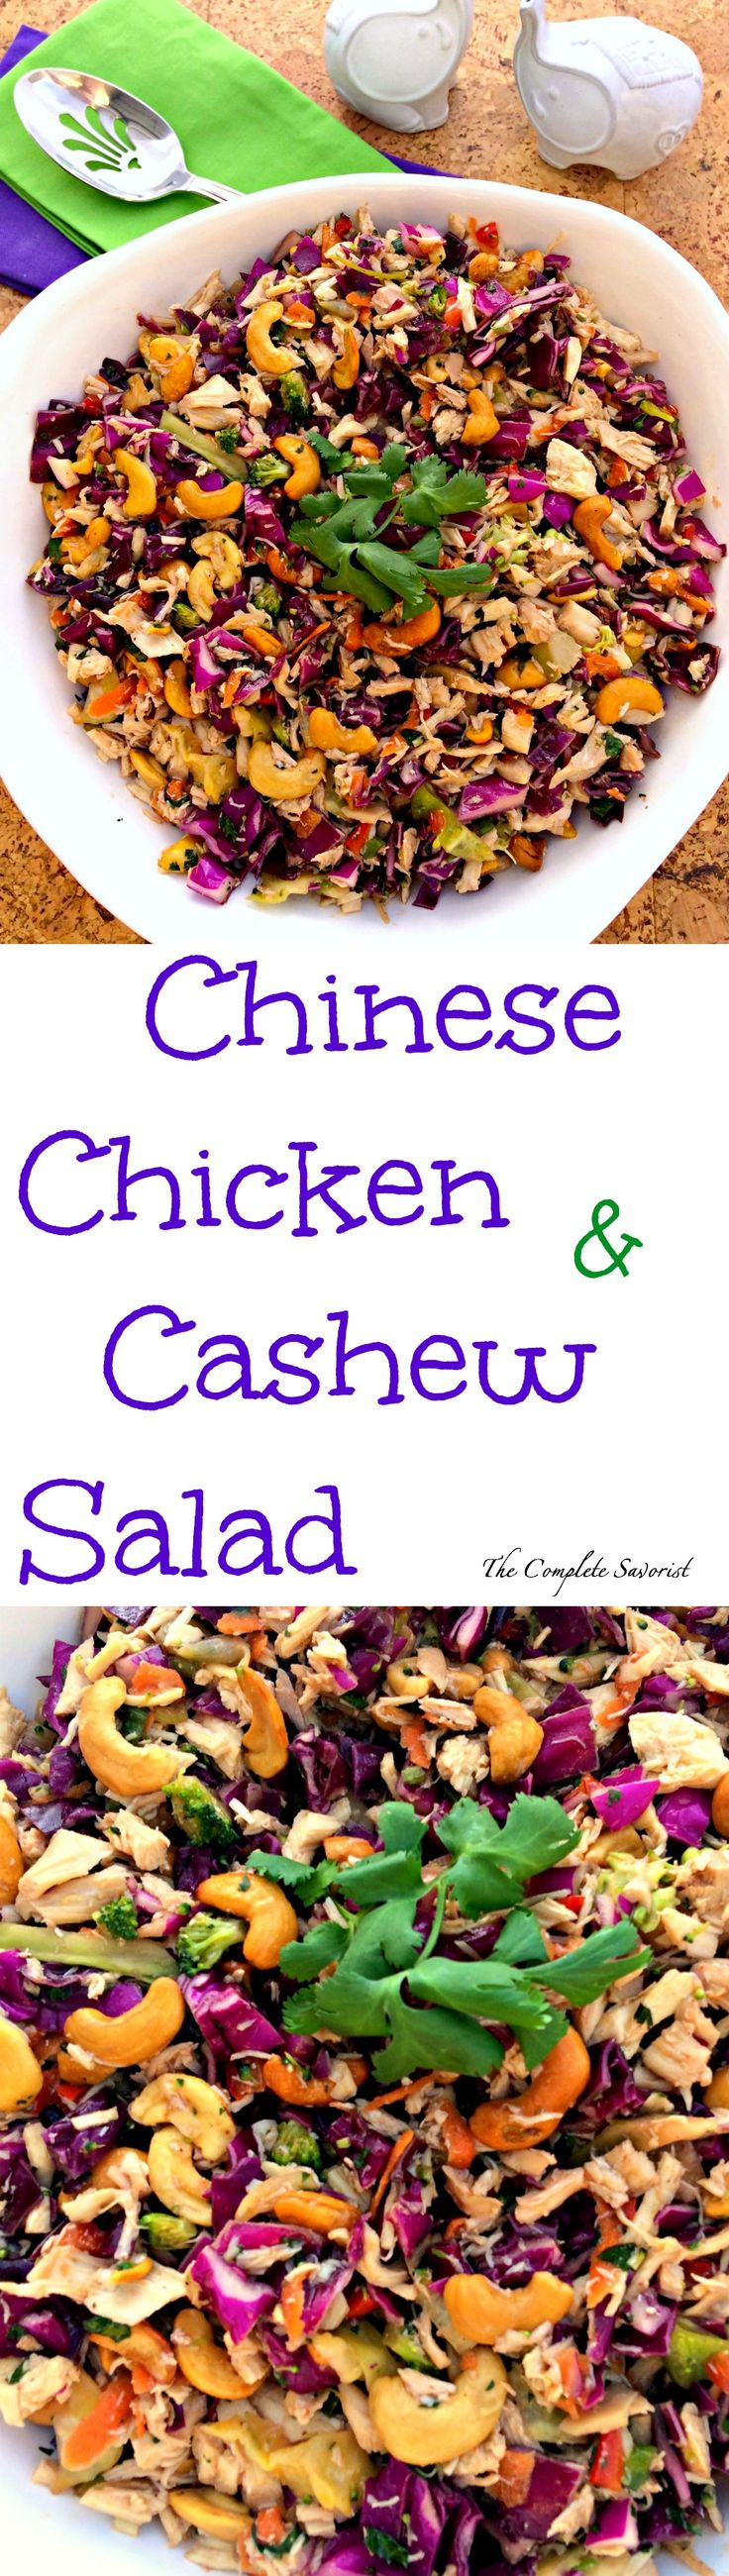 Chinese Chicken and Cashew Salad ~ Salad from an Asian slaw, chicken, and cashews in a tangy dressing. ~ The Complete Savorist